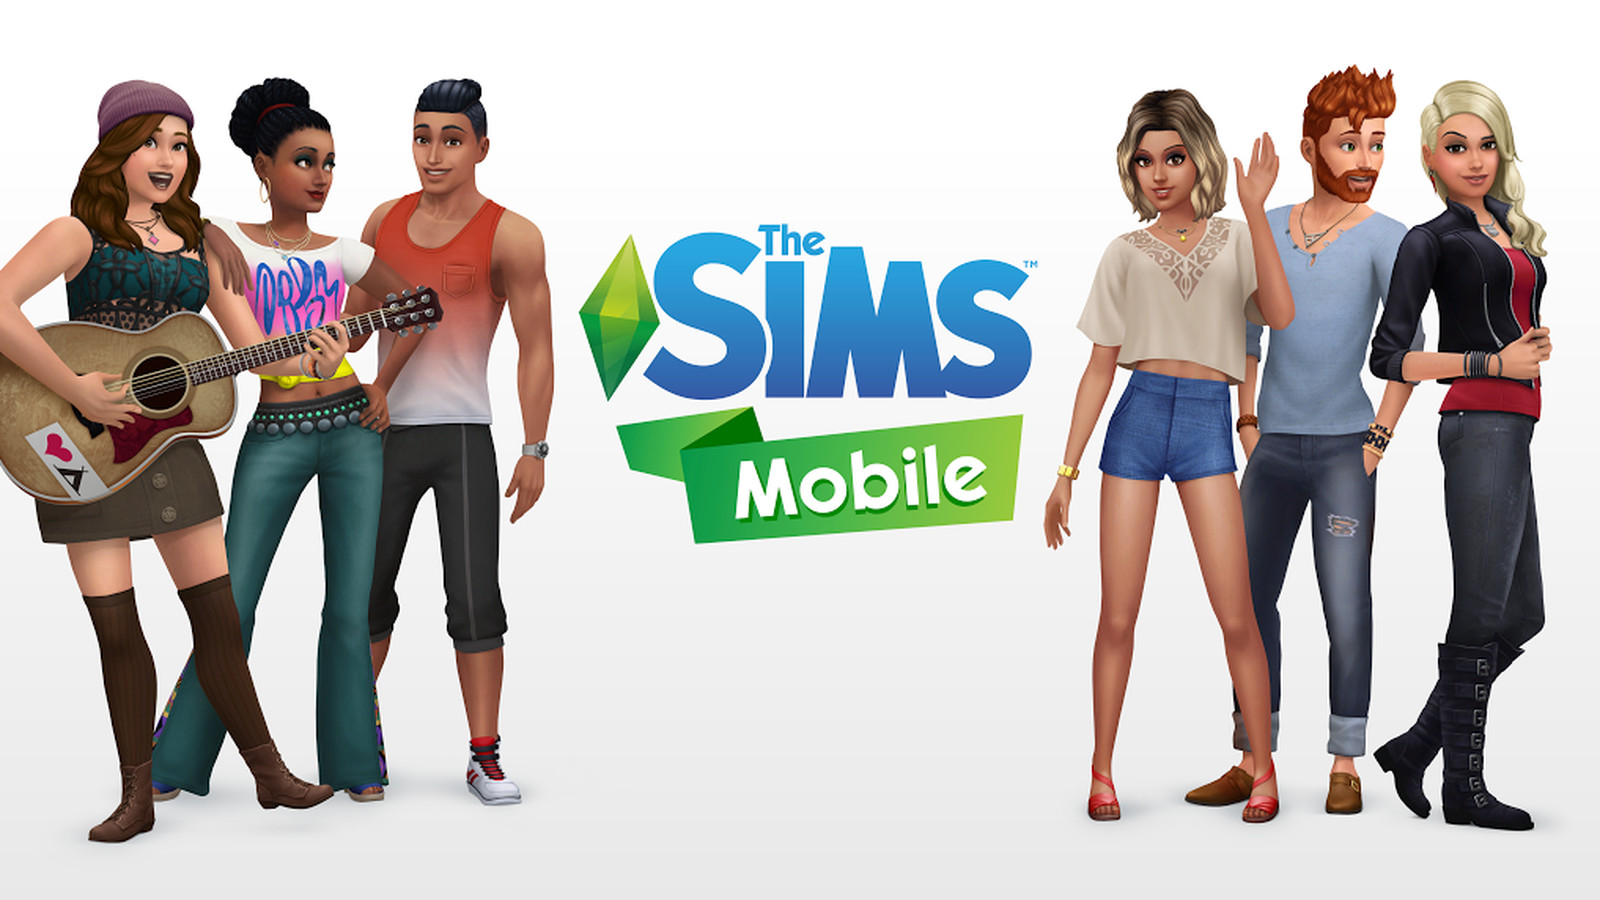 Casinos geco gaming the sims mobile - 937171